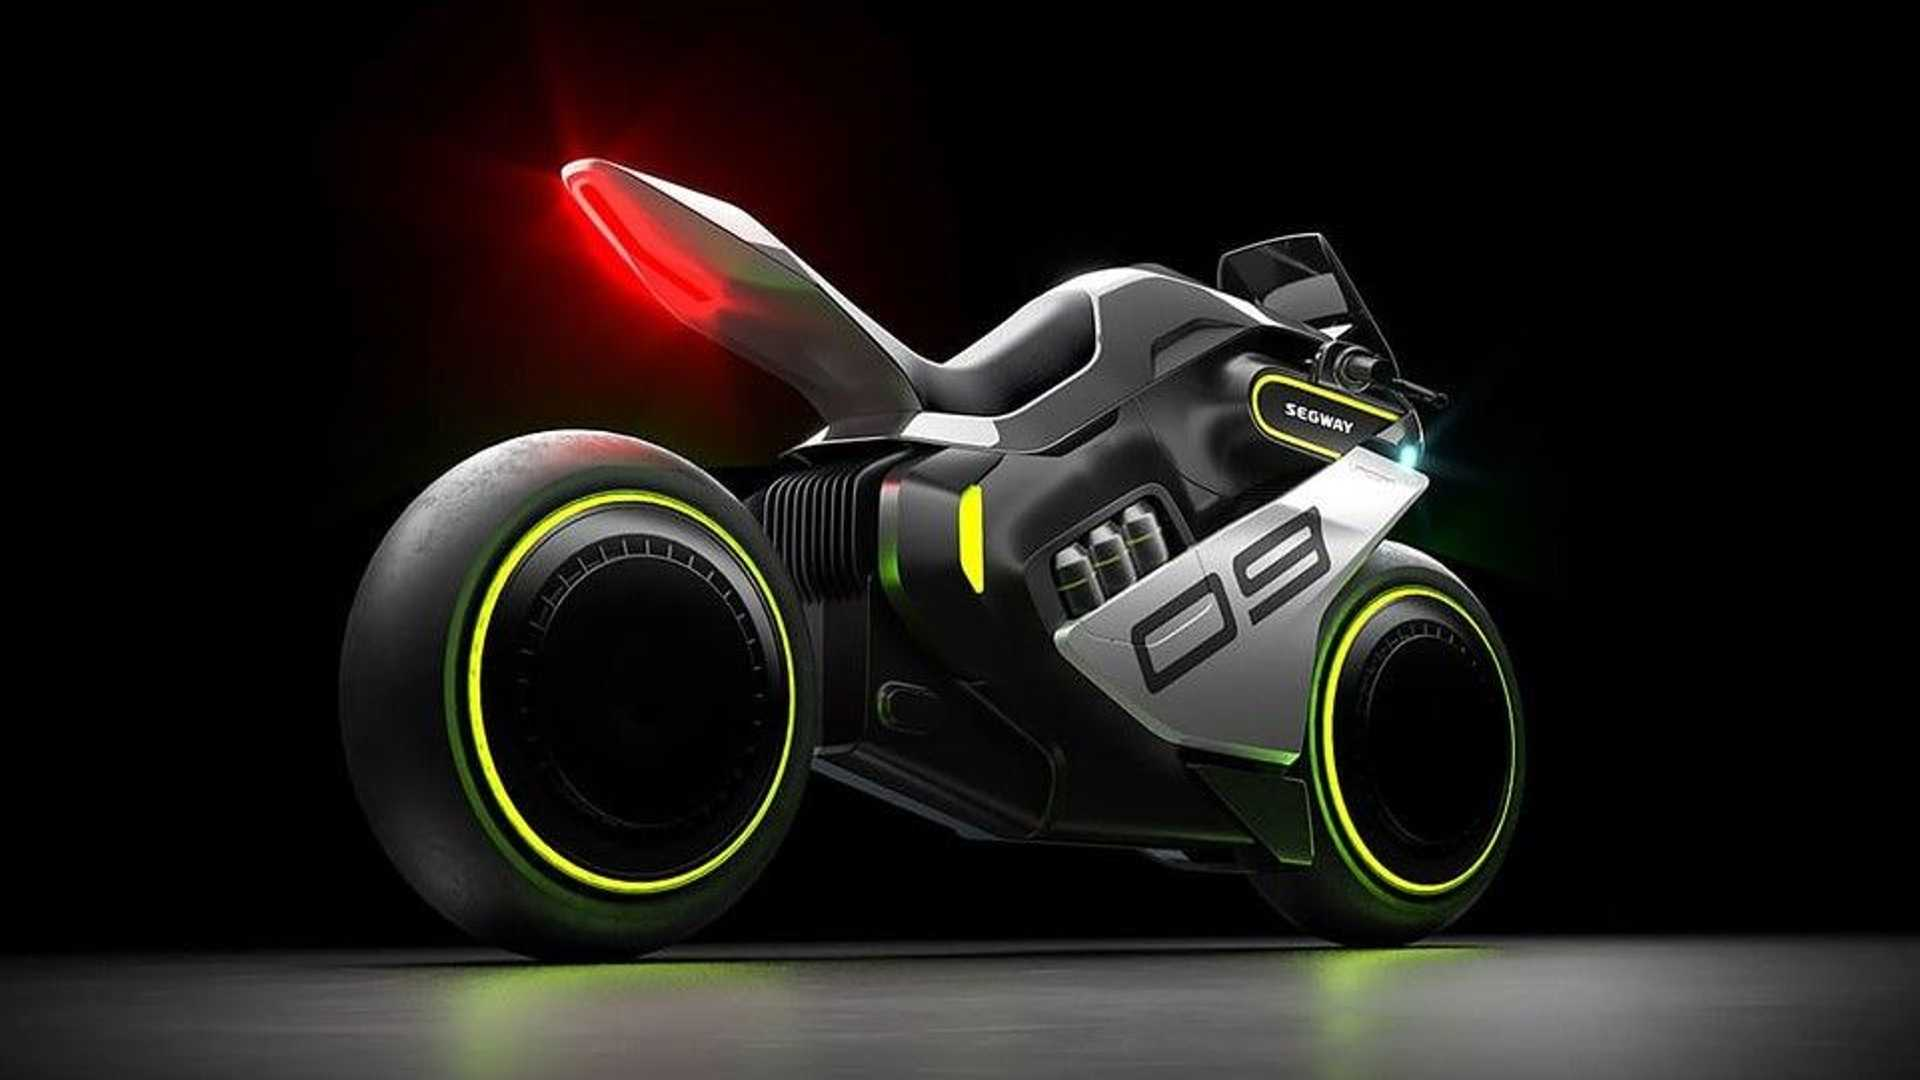 Segway's ultra-futuristic Apex H2 is a Hydrogen Powered Motorcycle